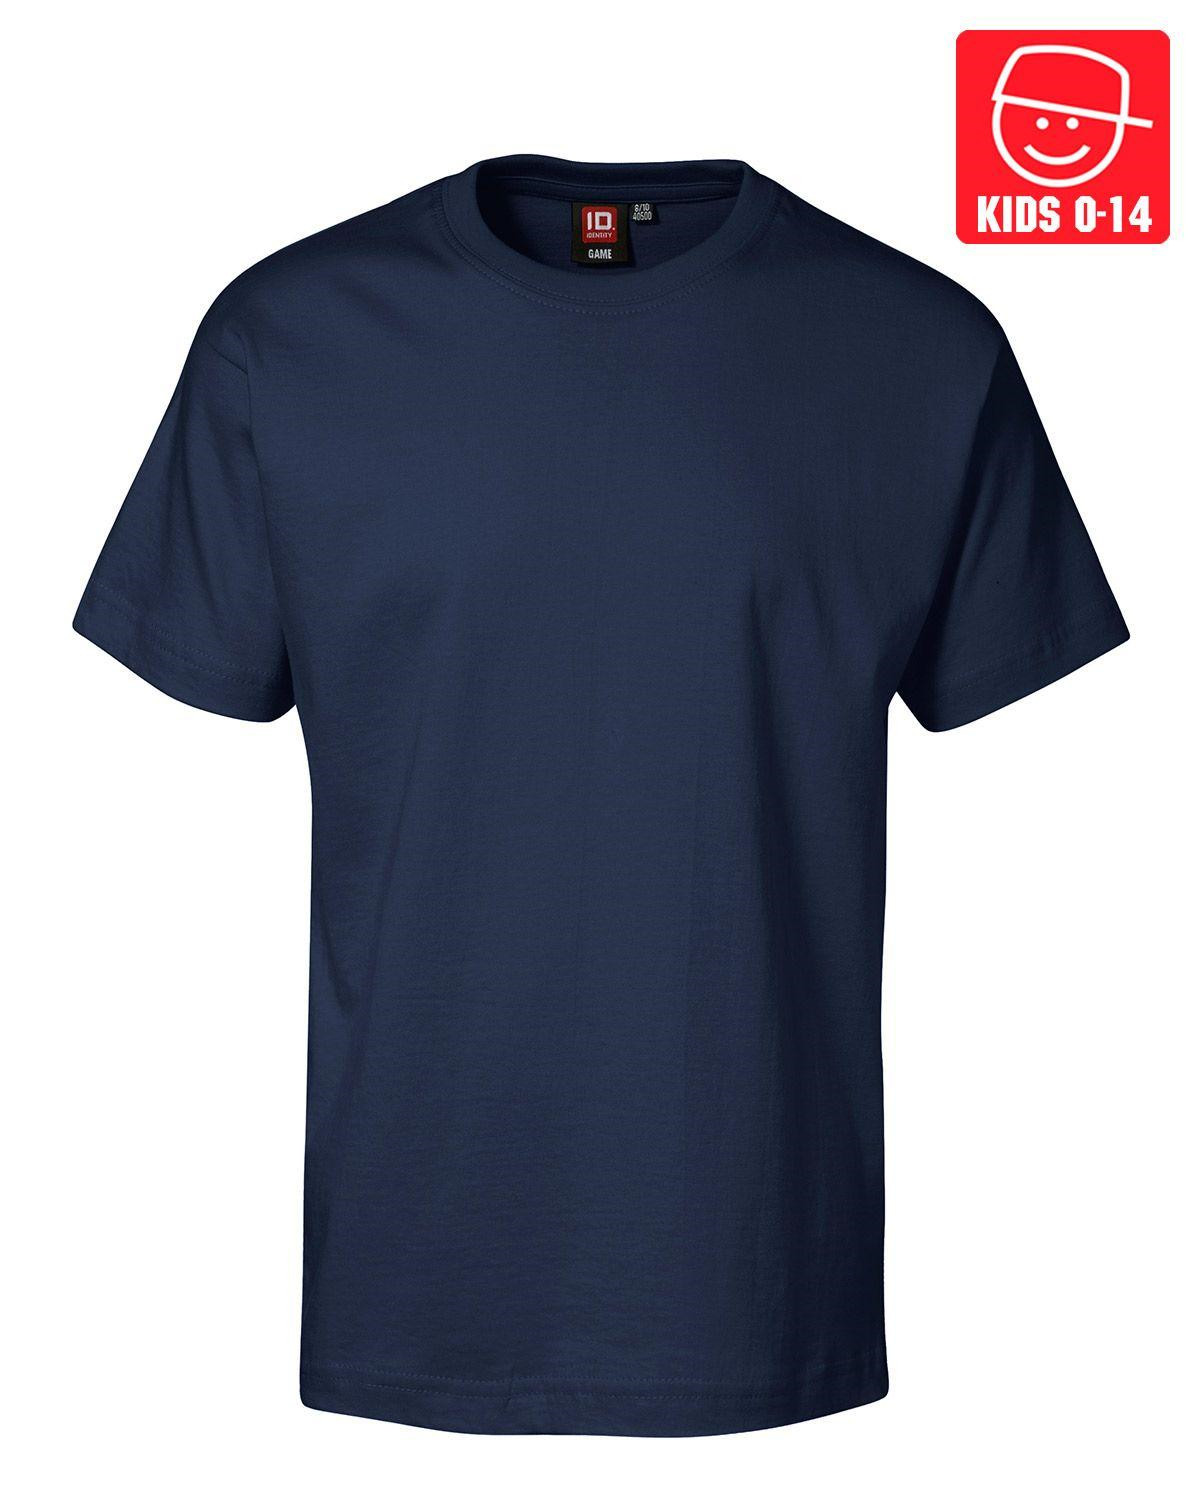 Image of   ID T-shirts (Navy, 116)